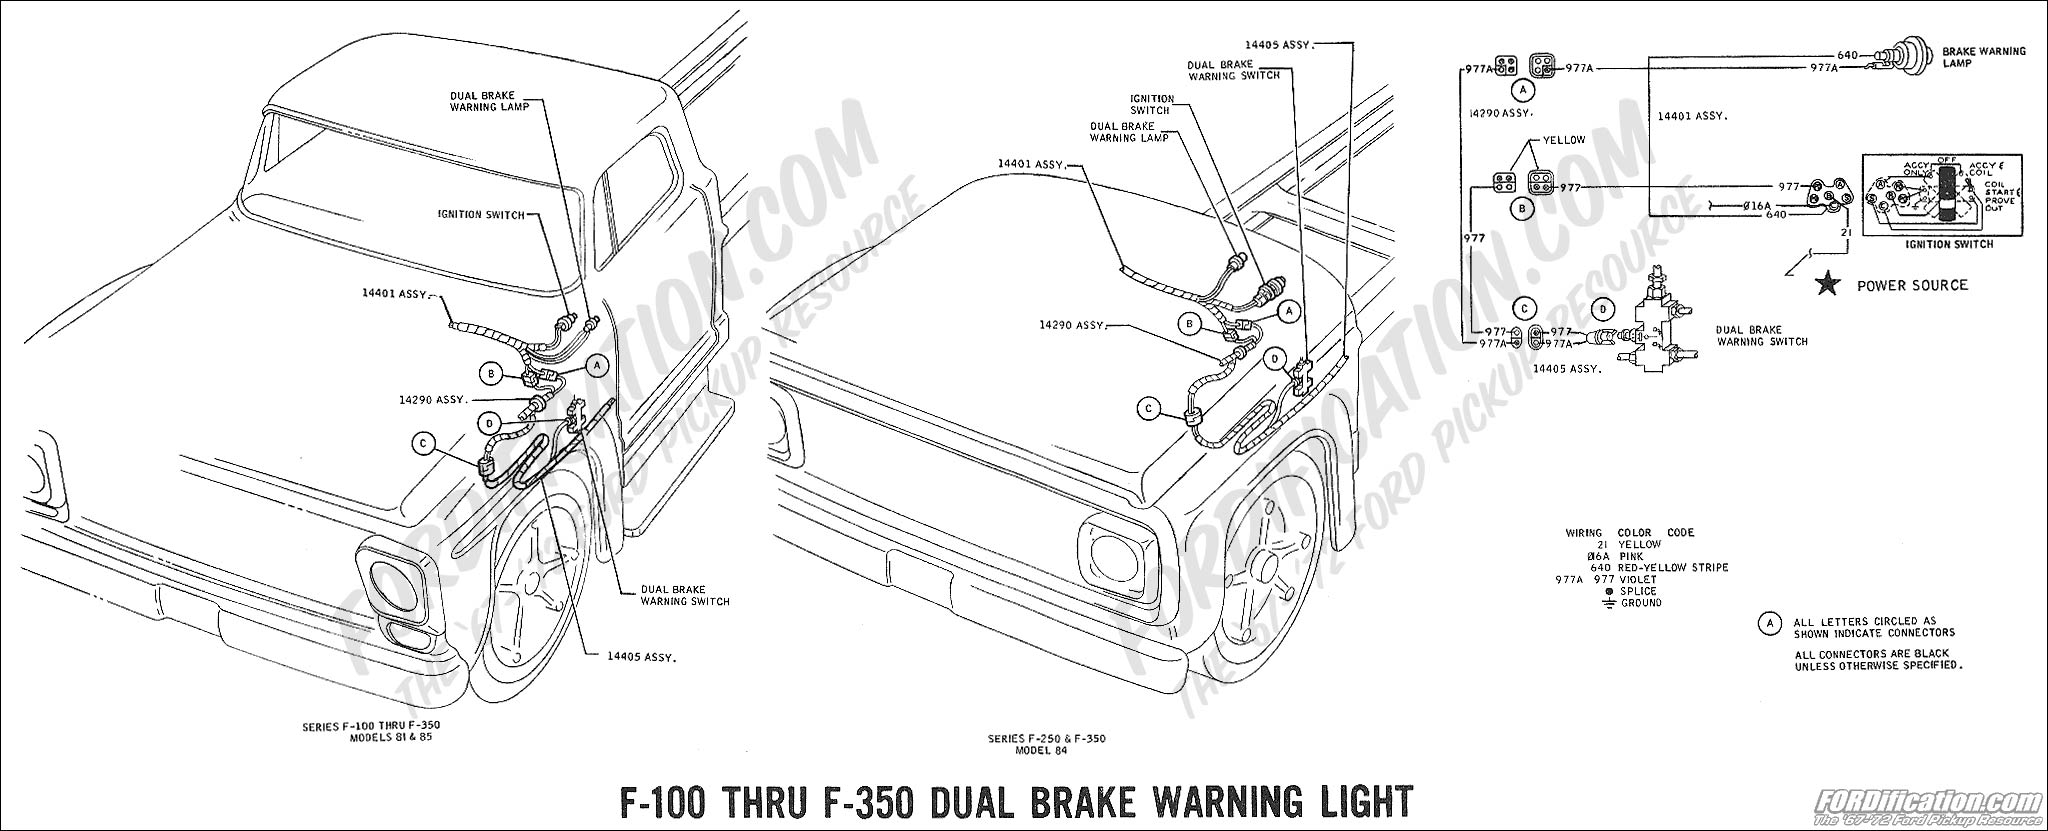 Ford Truck Technical Drawings And Schematics Section H Wiring 97 F 250 Fuse Box Diagram 1969 100 Thru 350 Dual Brake Warning Light